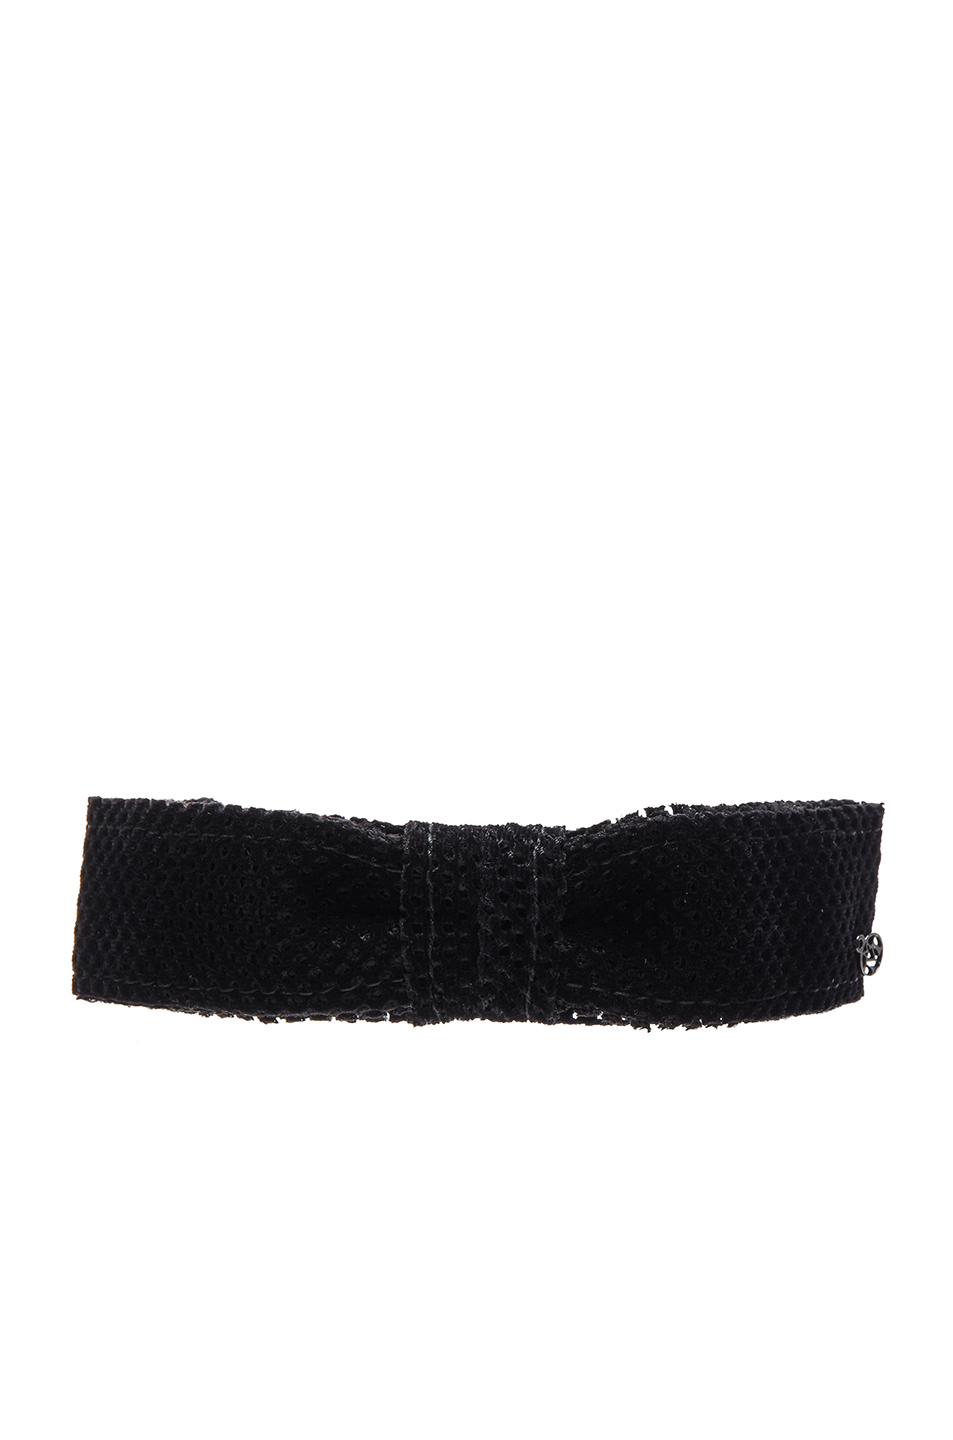 Maison Michel Kety Perforated Headband in Black dzBHHIv80A